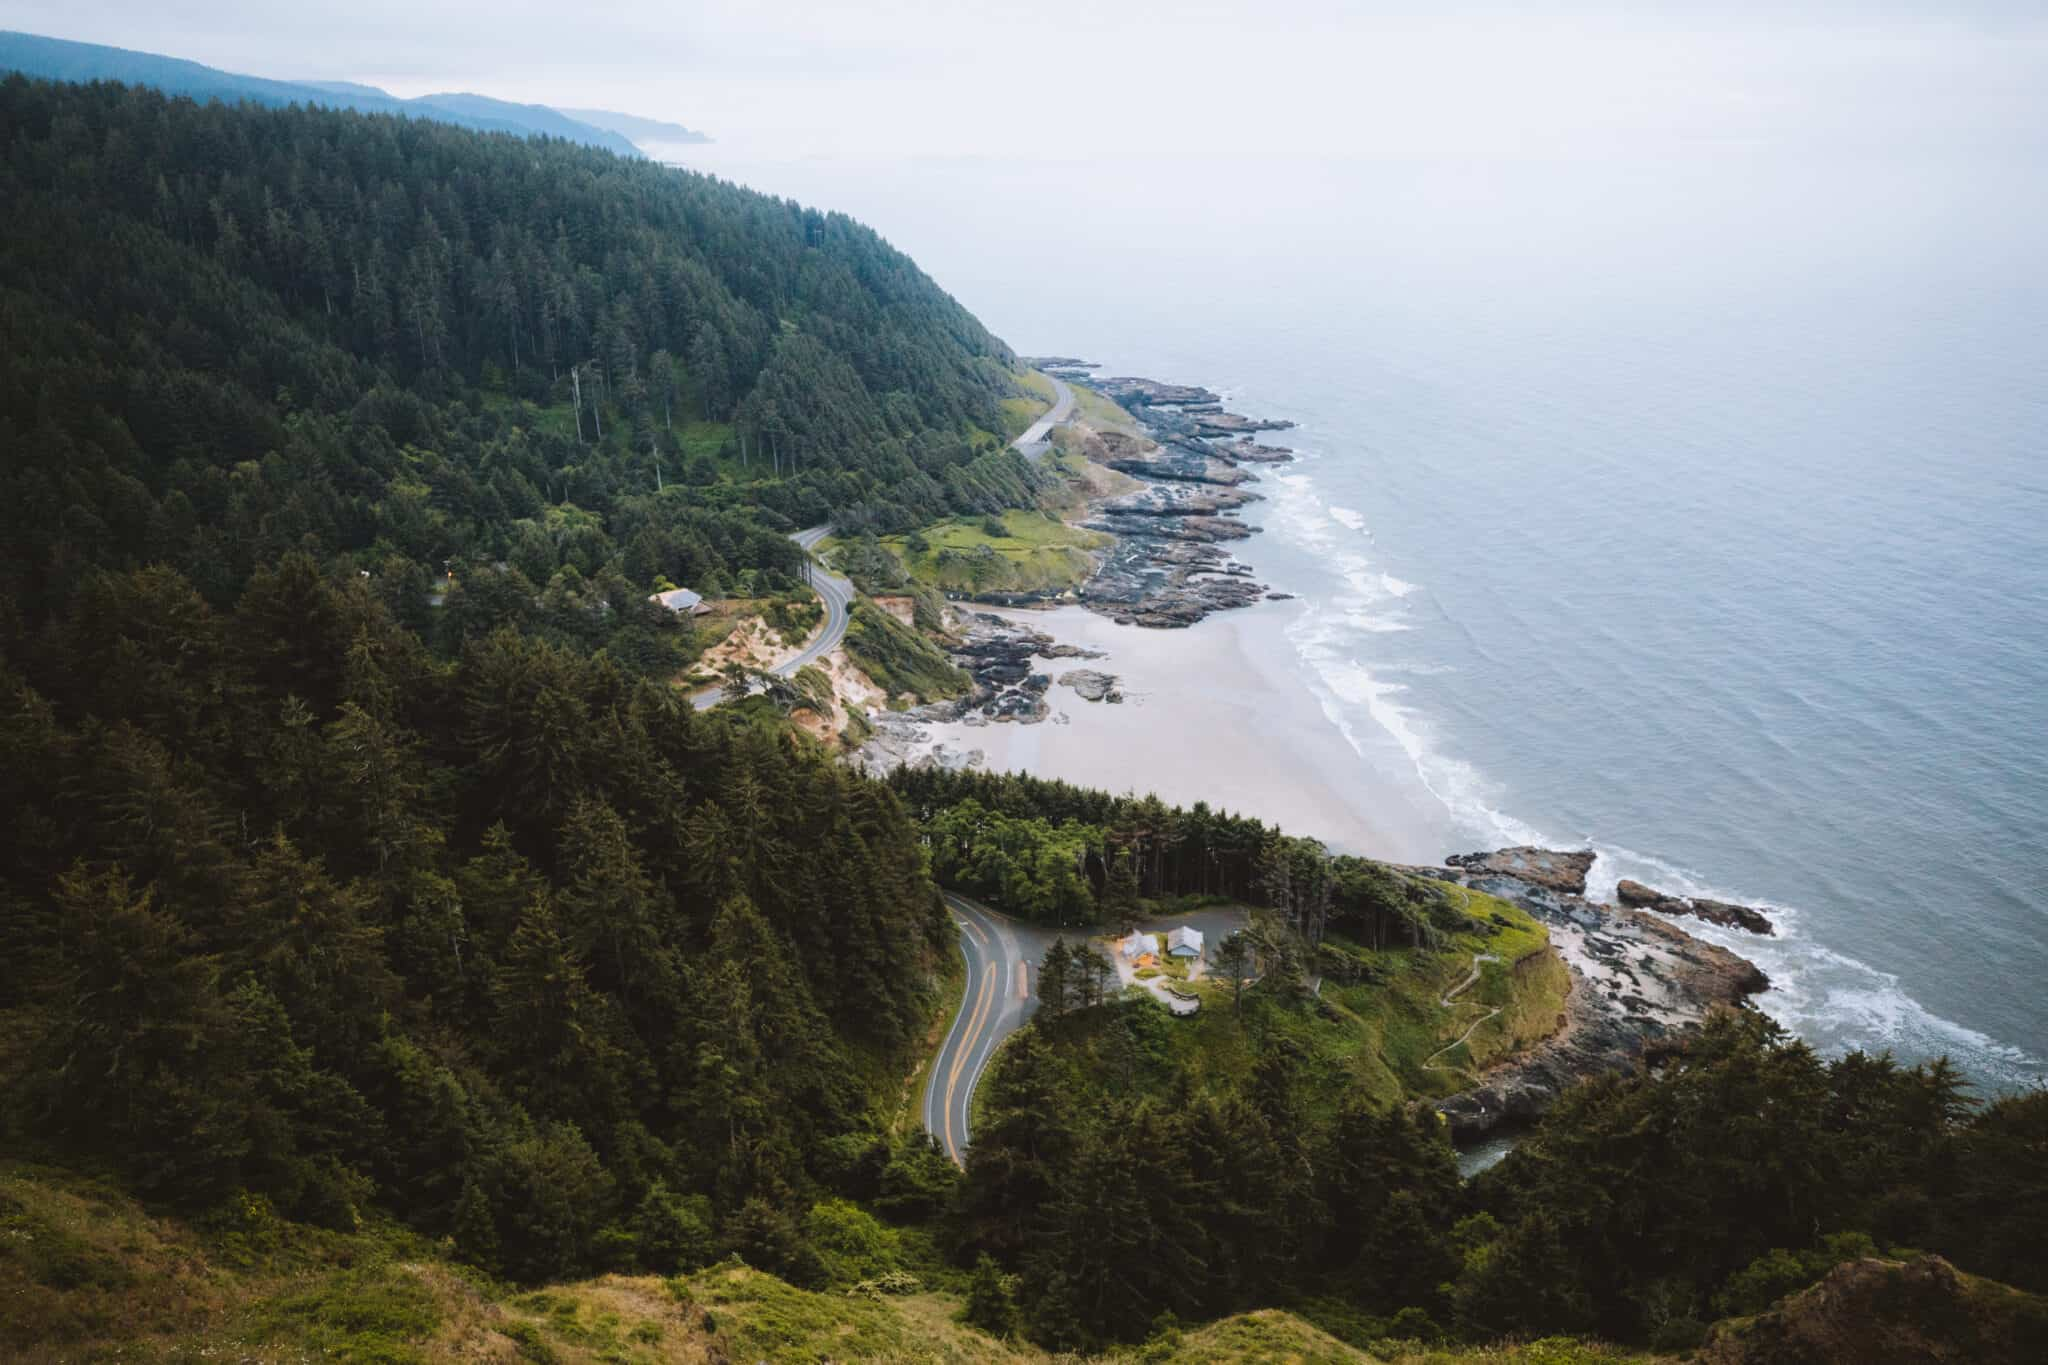 10 Epic Things To Do In Cape Perpetua You Must Experience (Camping, Hiking, and More!)